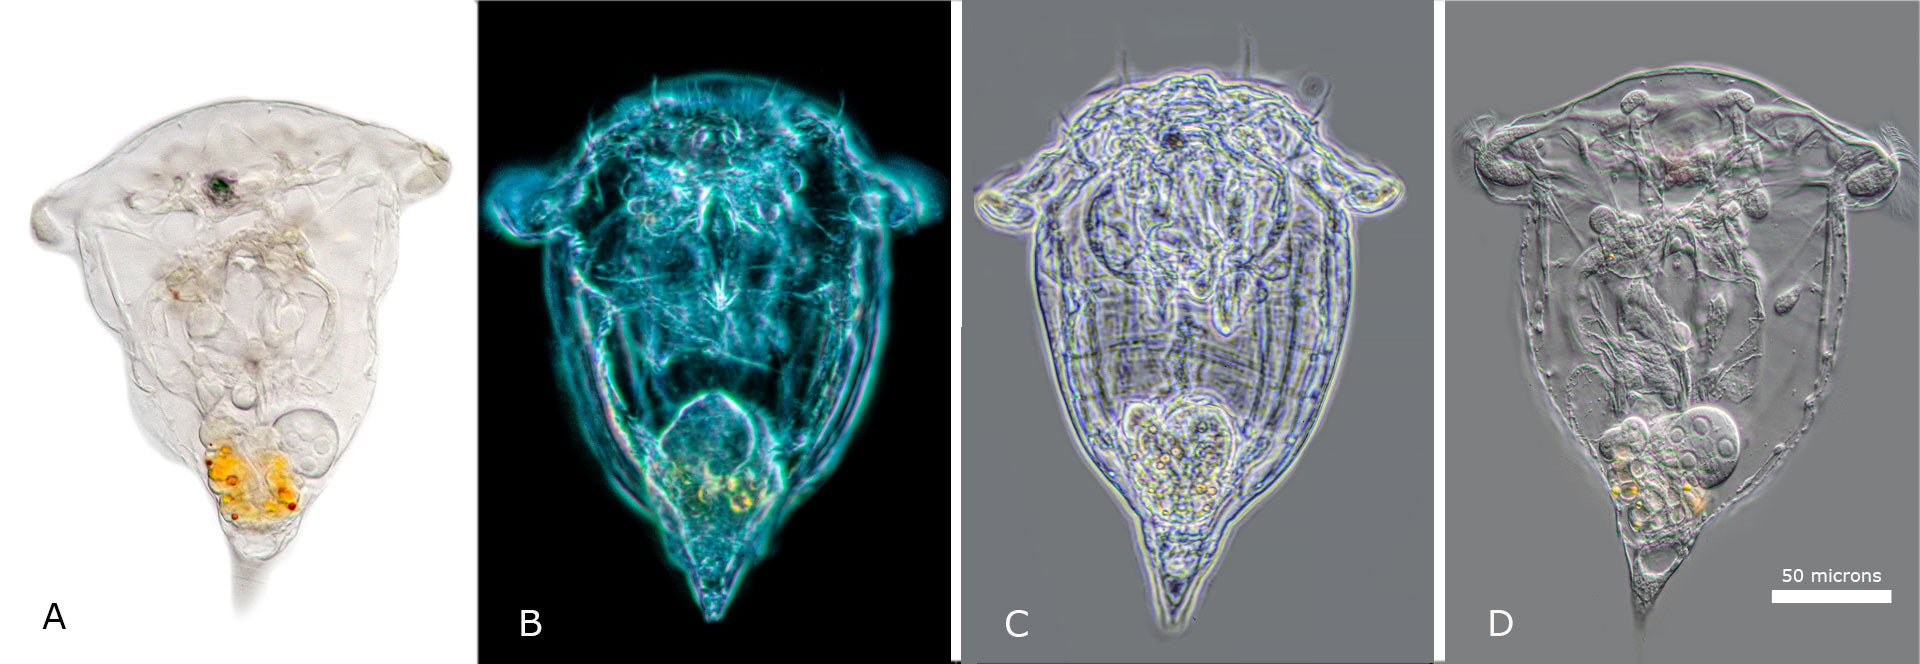 Rotifer Synchaeta pectinata viewed with A) Brightfield  B) Darkfield C) Phase contrast and D) DIC microscopy.